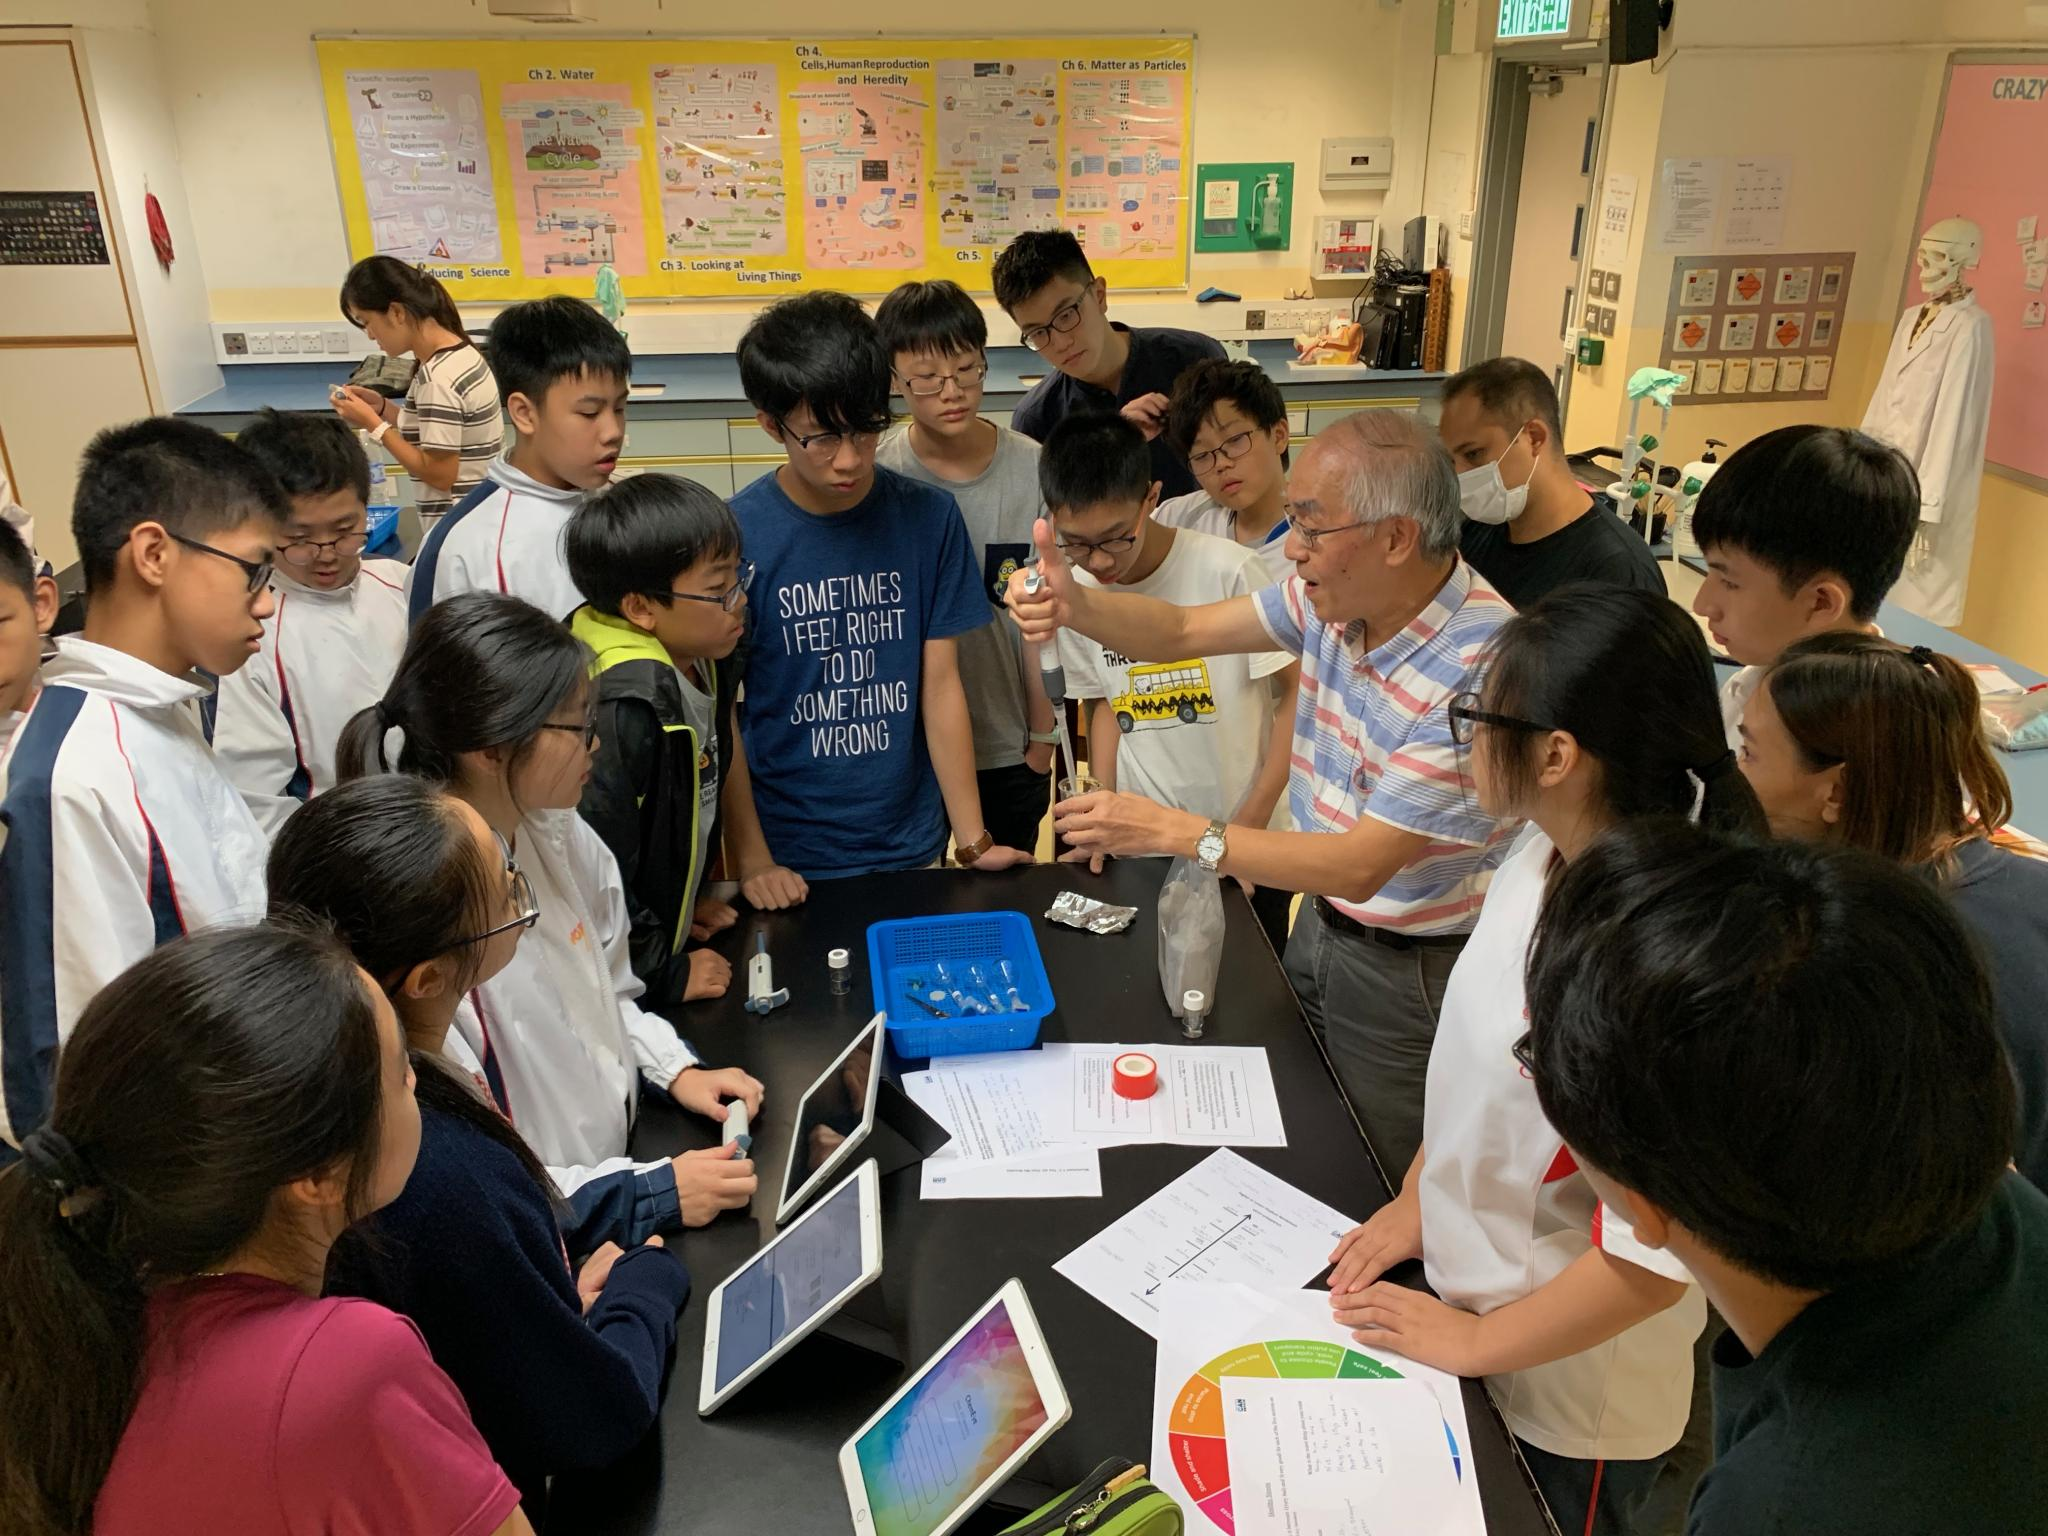 Professor Chan explains to students the procedures of the experiment and theories behind.